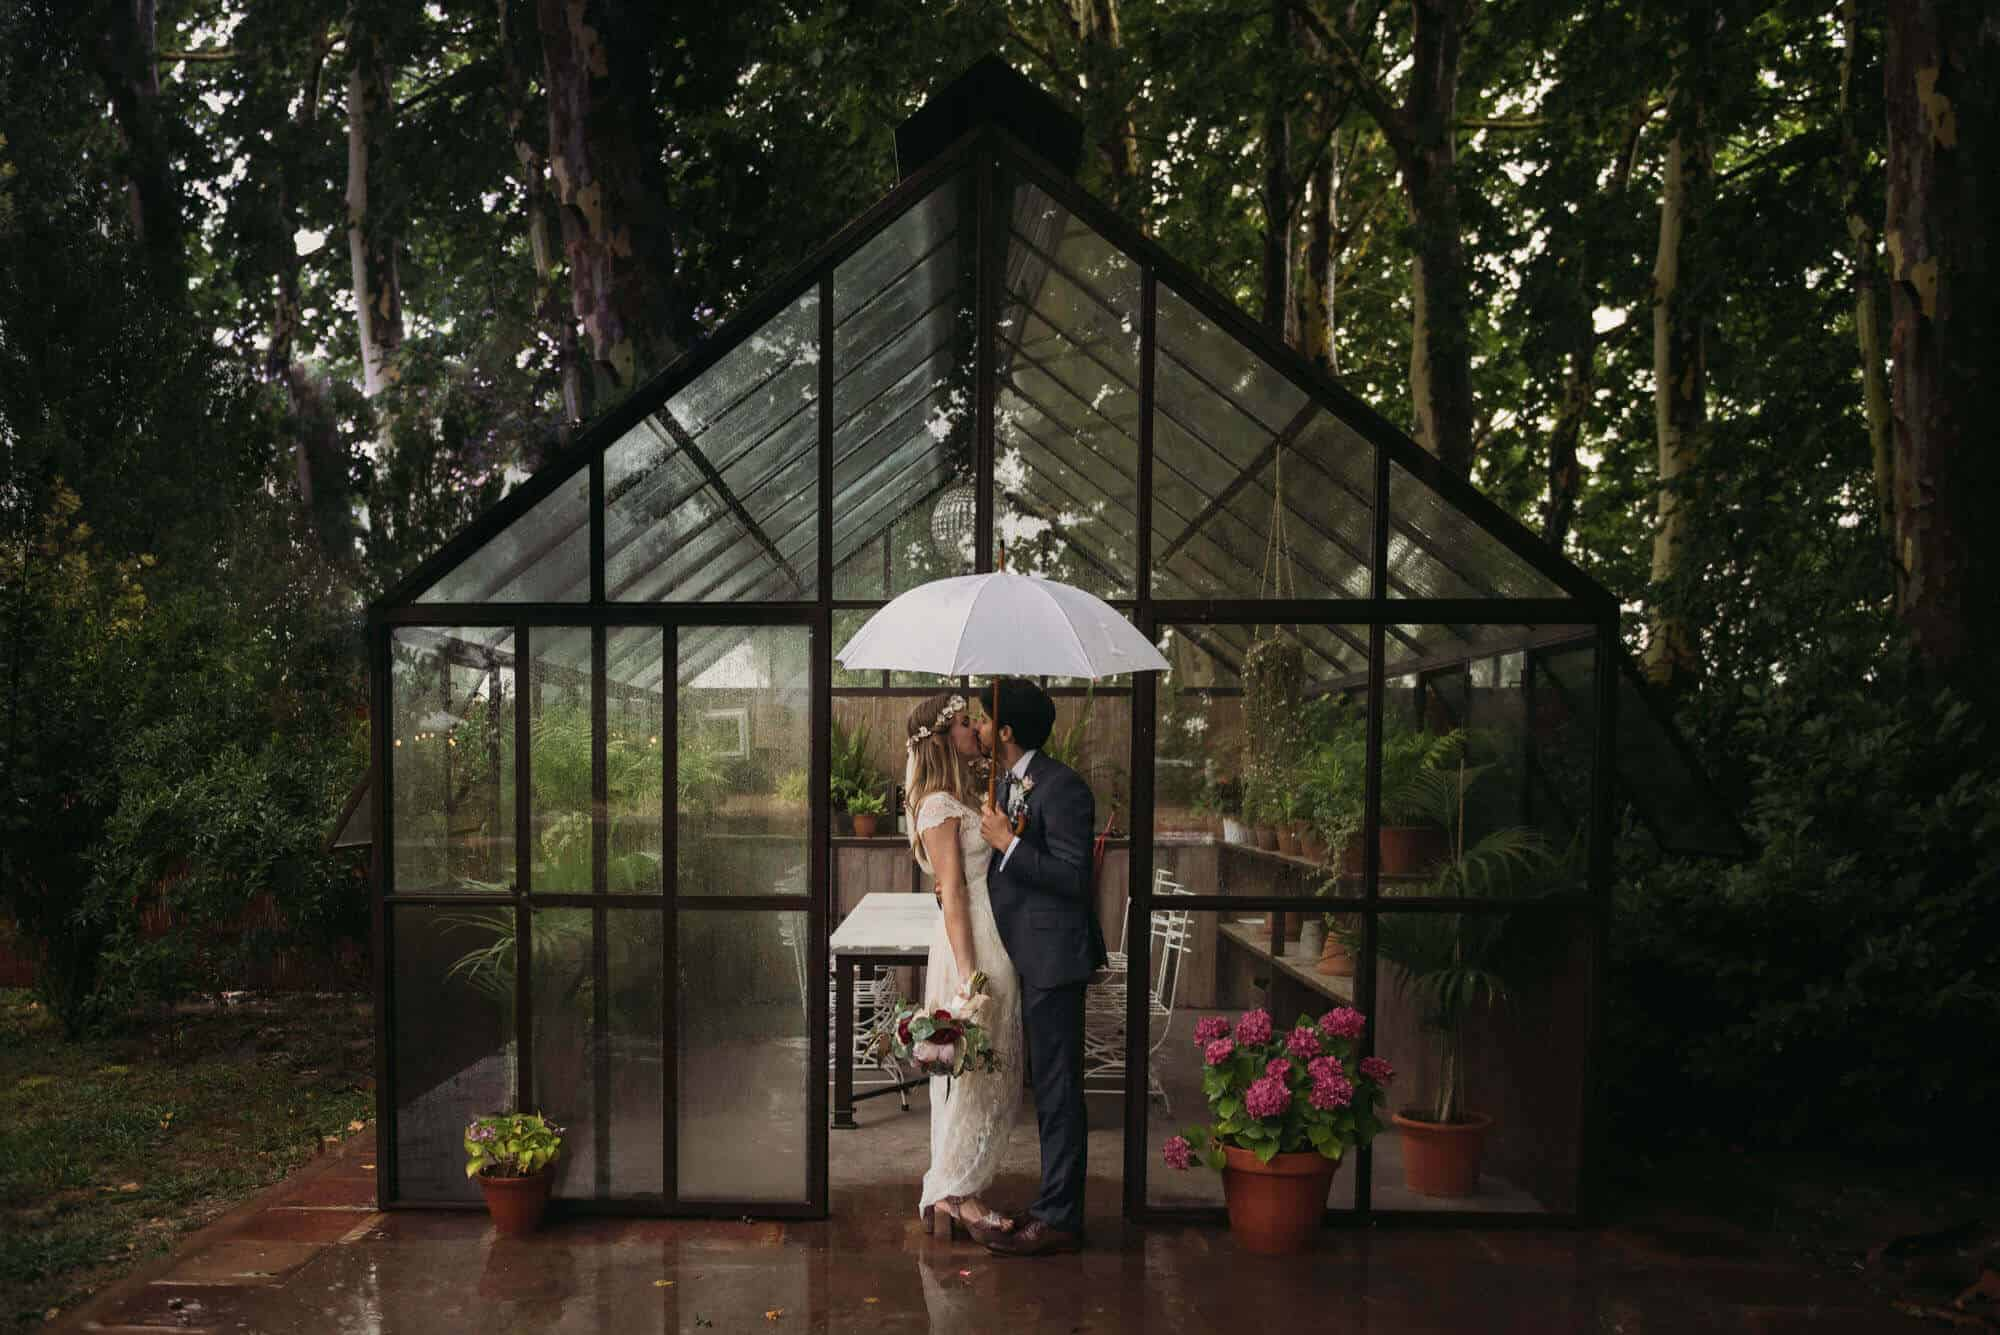 couple greenhouse weddings castle cortal great